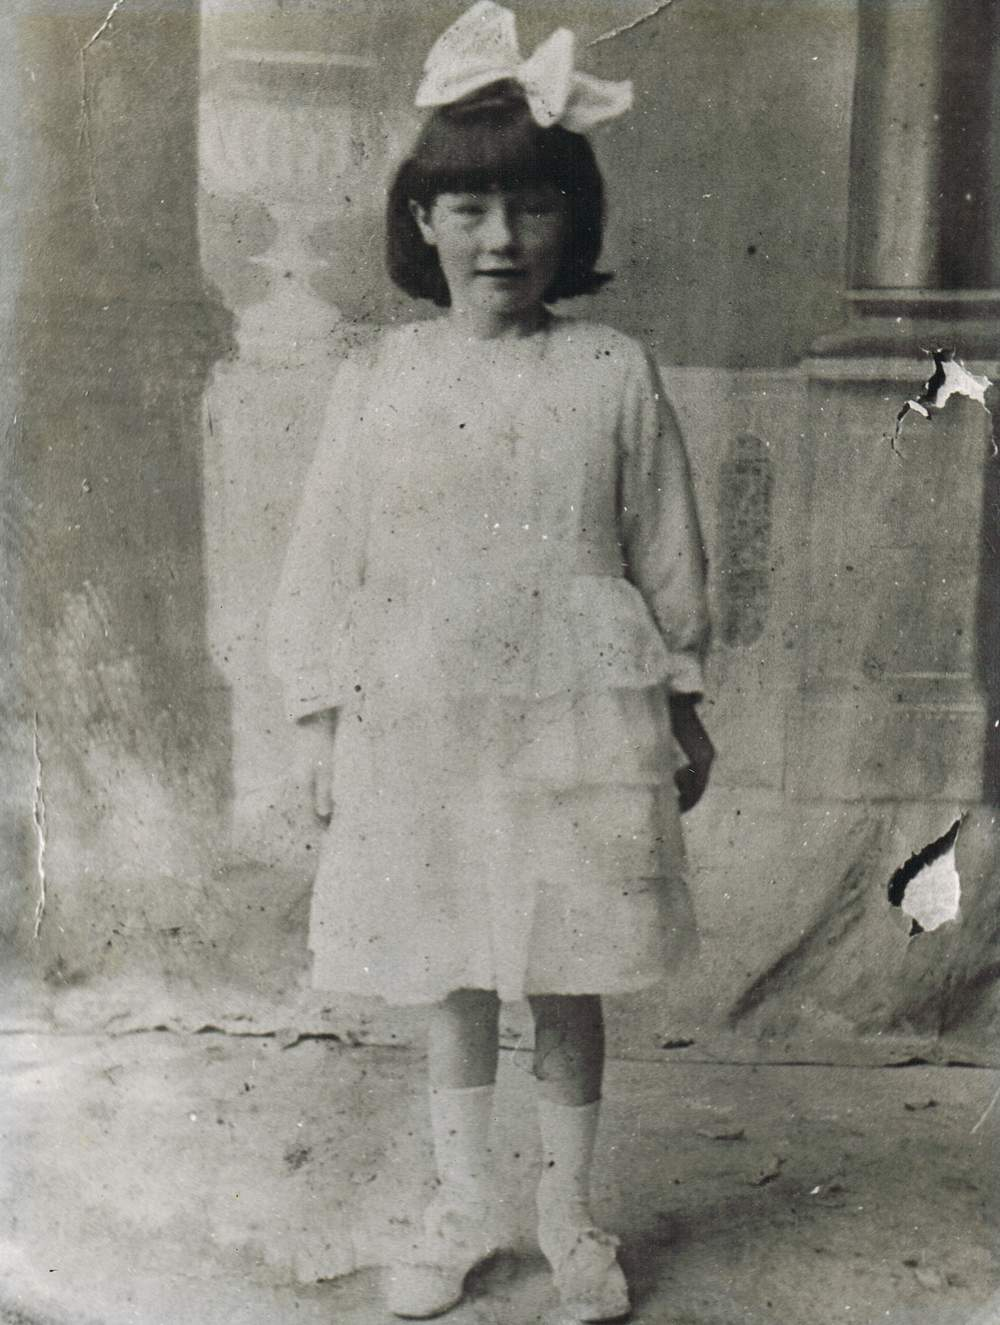 Margaret (Peggy) O'Shea nee Loughman - Communion Day circa 1933